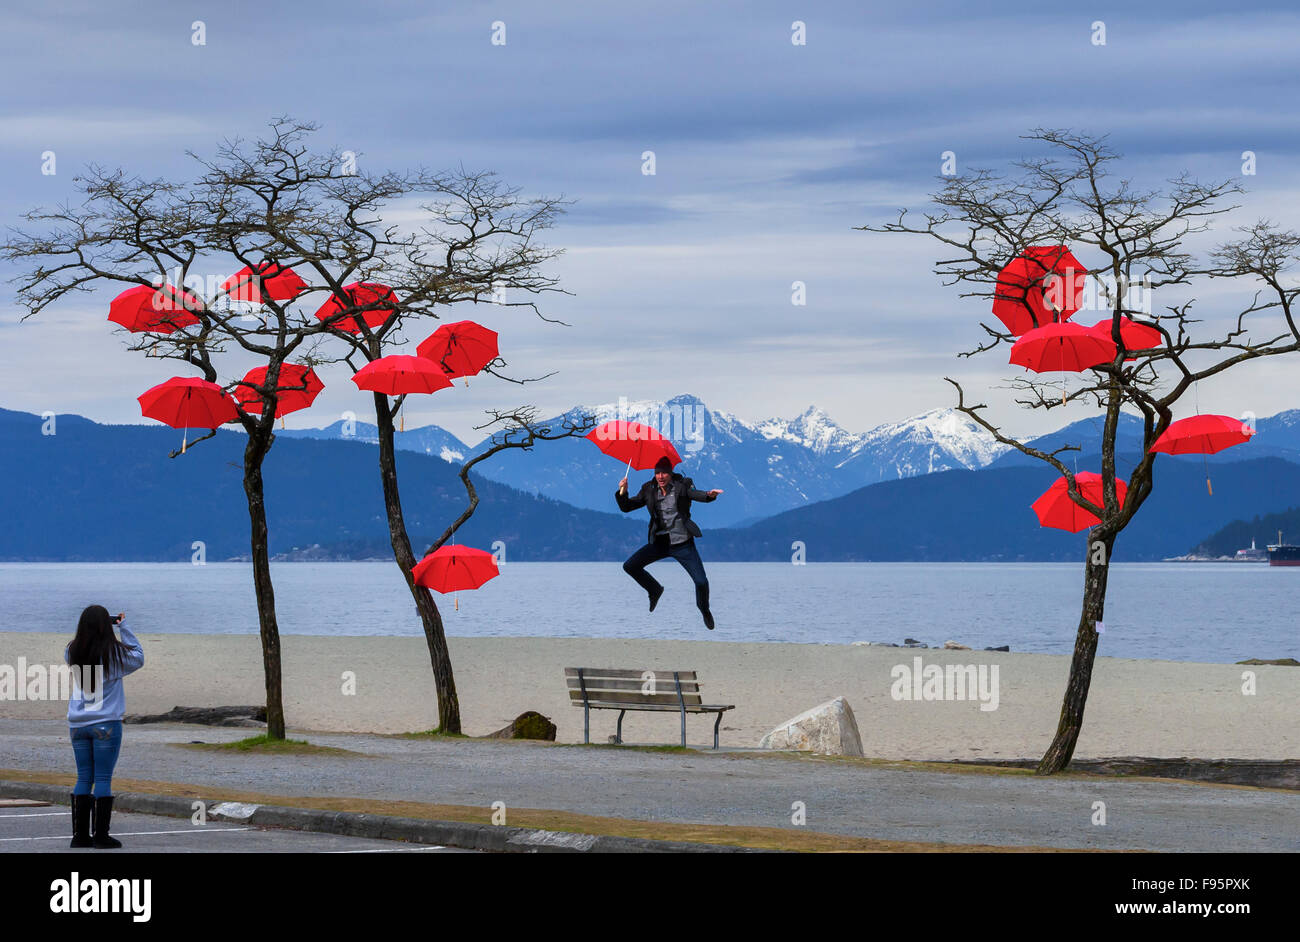 Outdoor umbrella art display with jumping man being photographed Spanish Banks, Vancouver, British Columbia, Canada - Stock Image